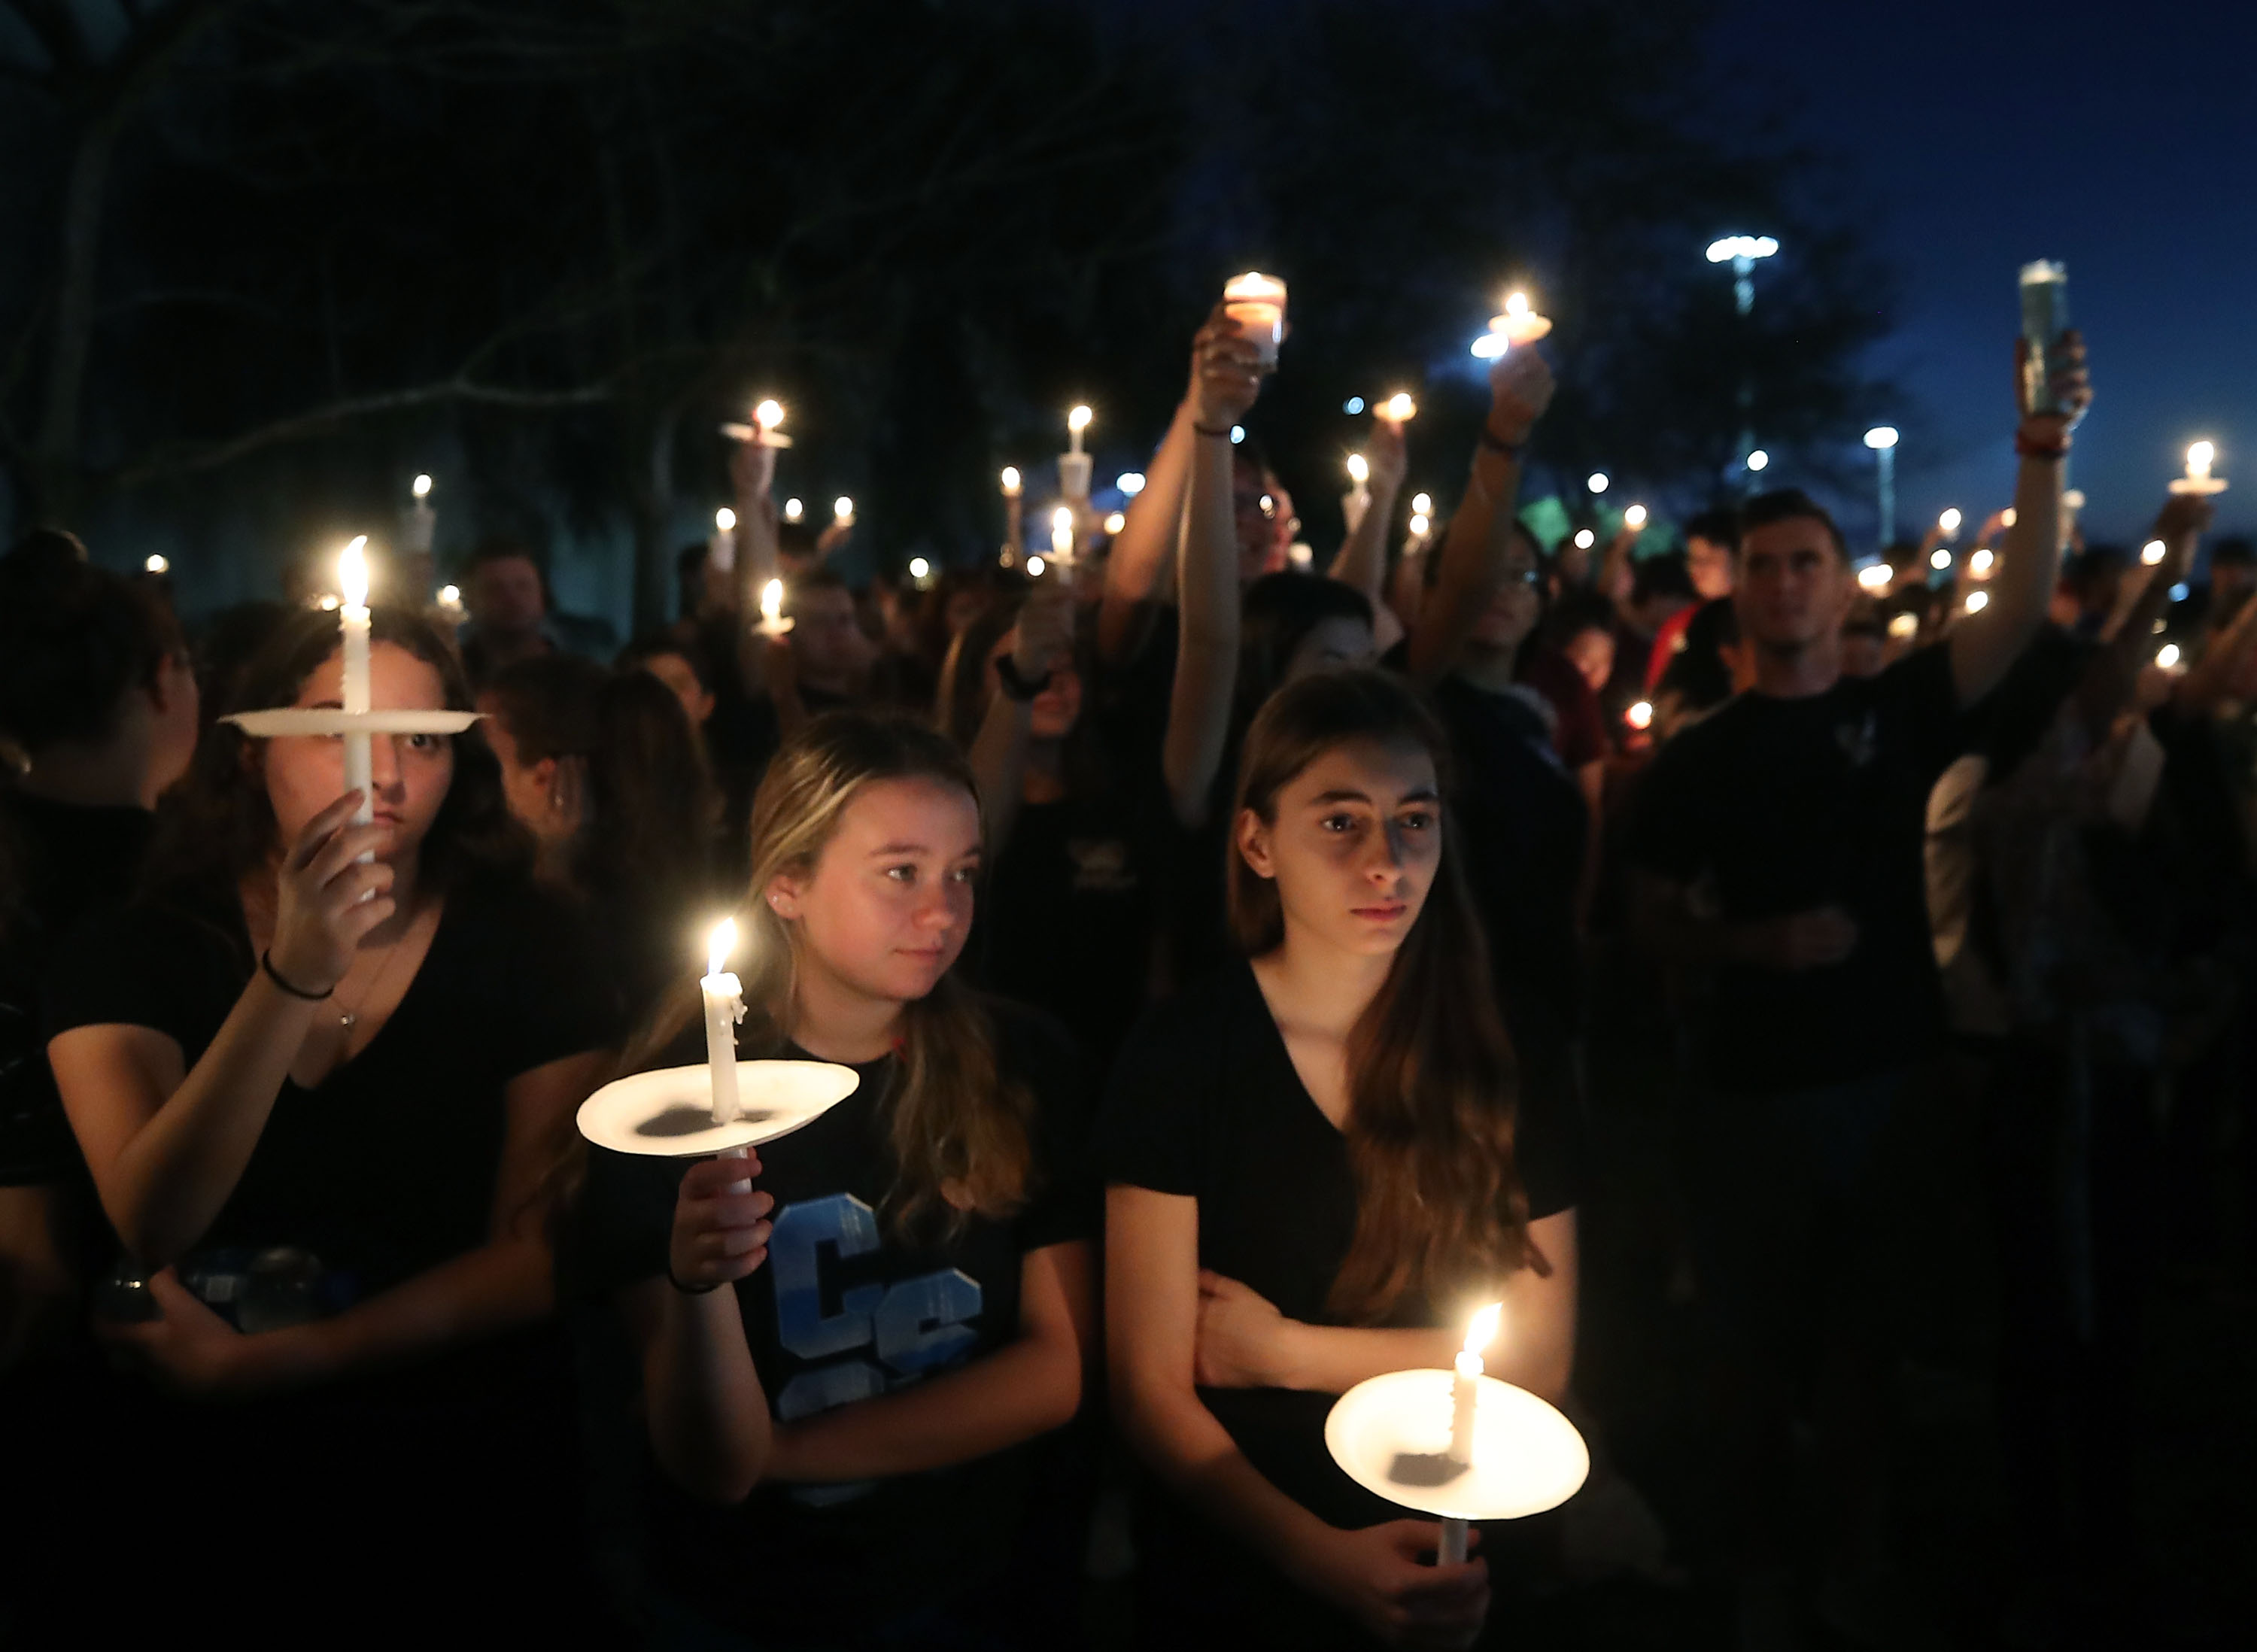 on February 15, 2018 in Parkland, Florida.